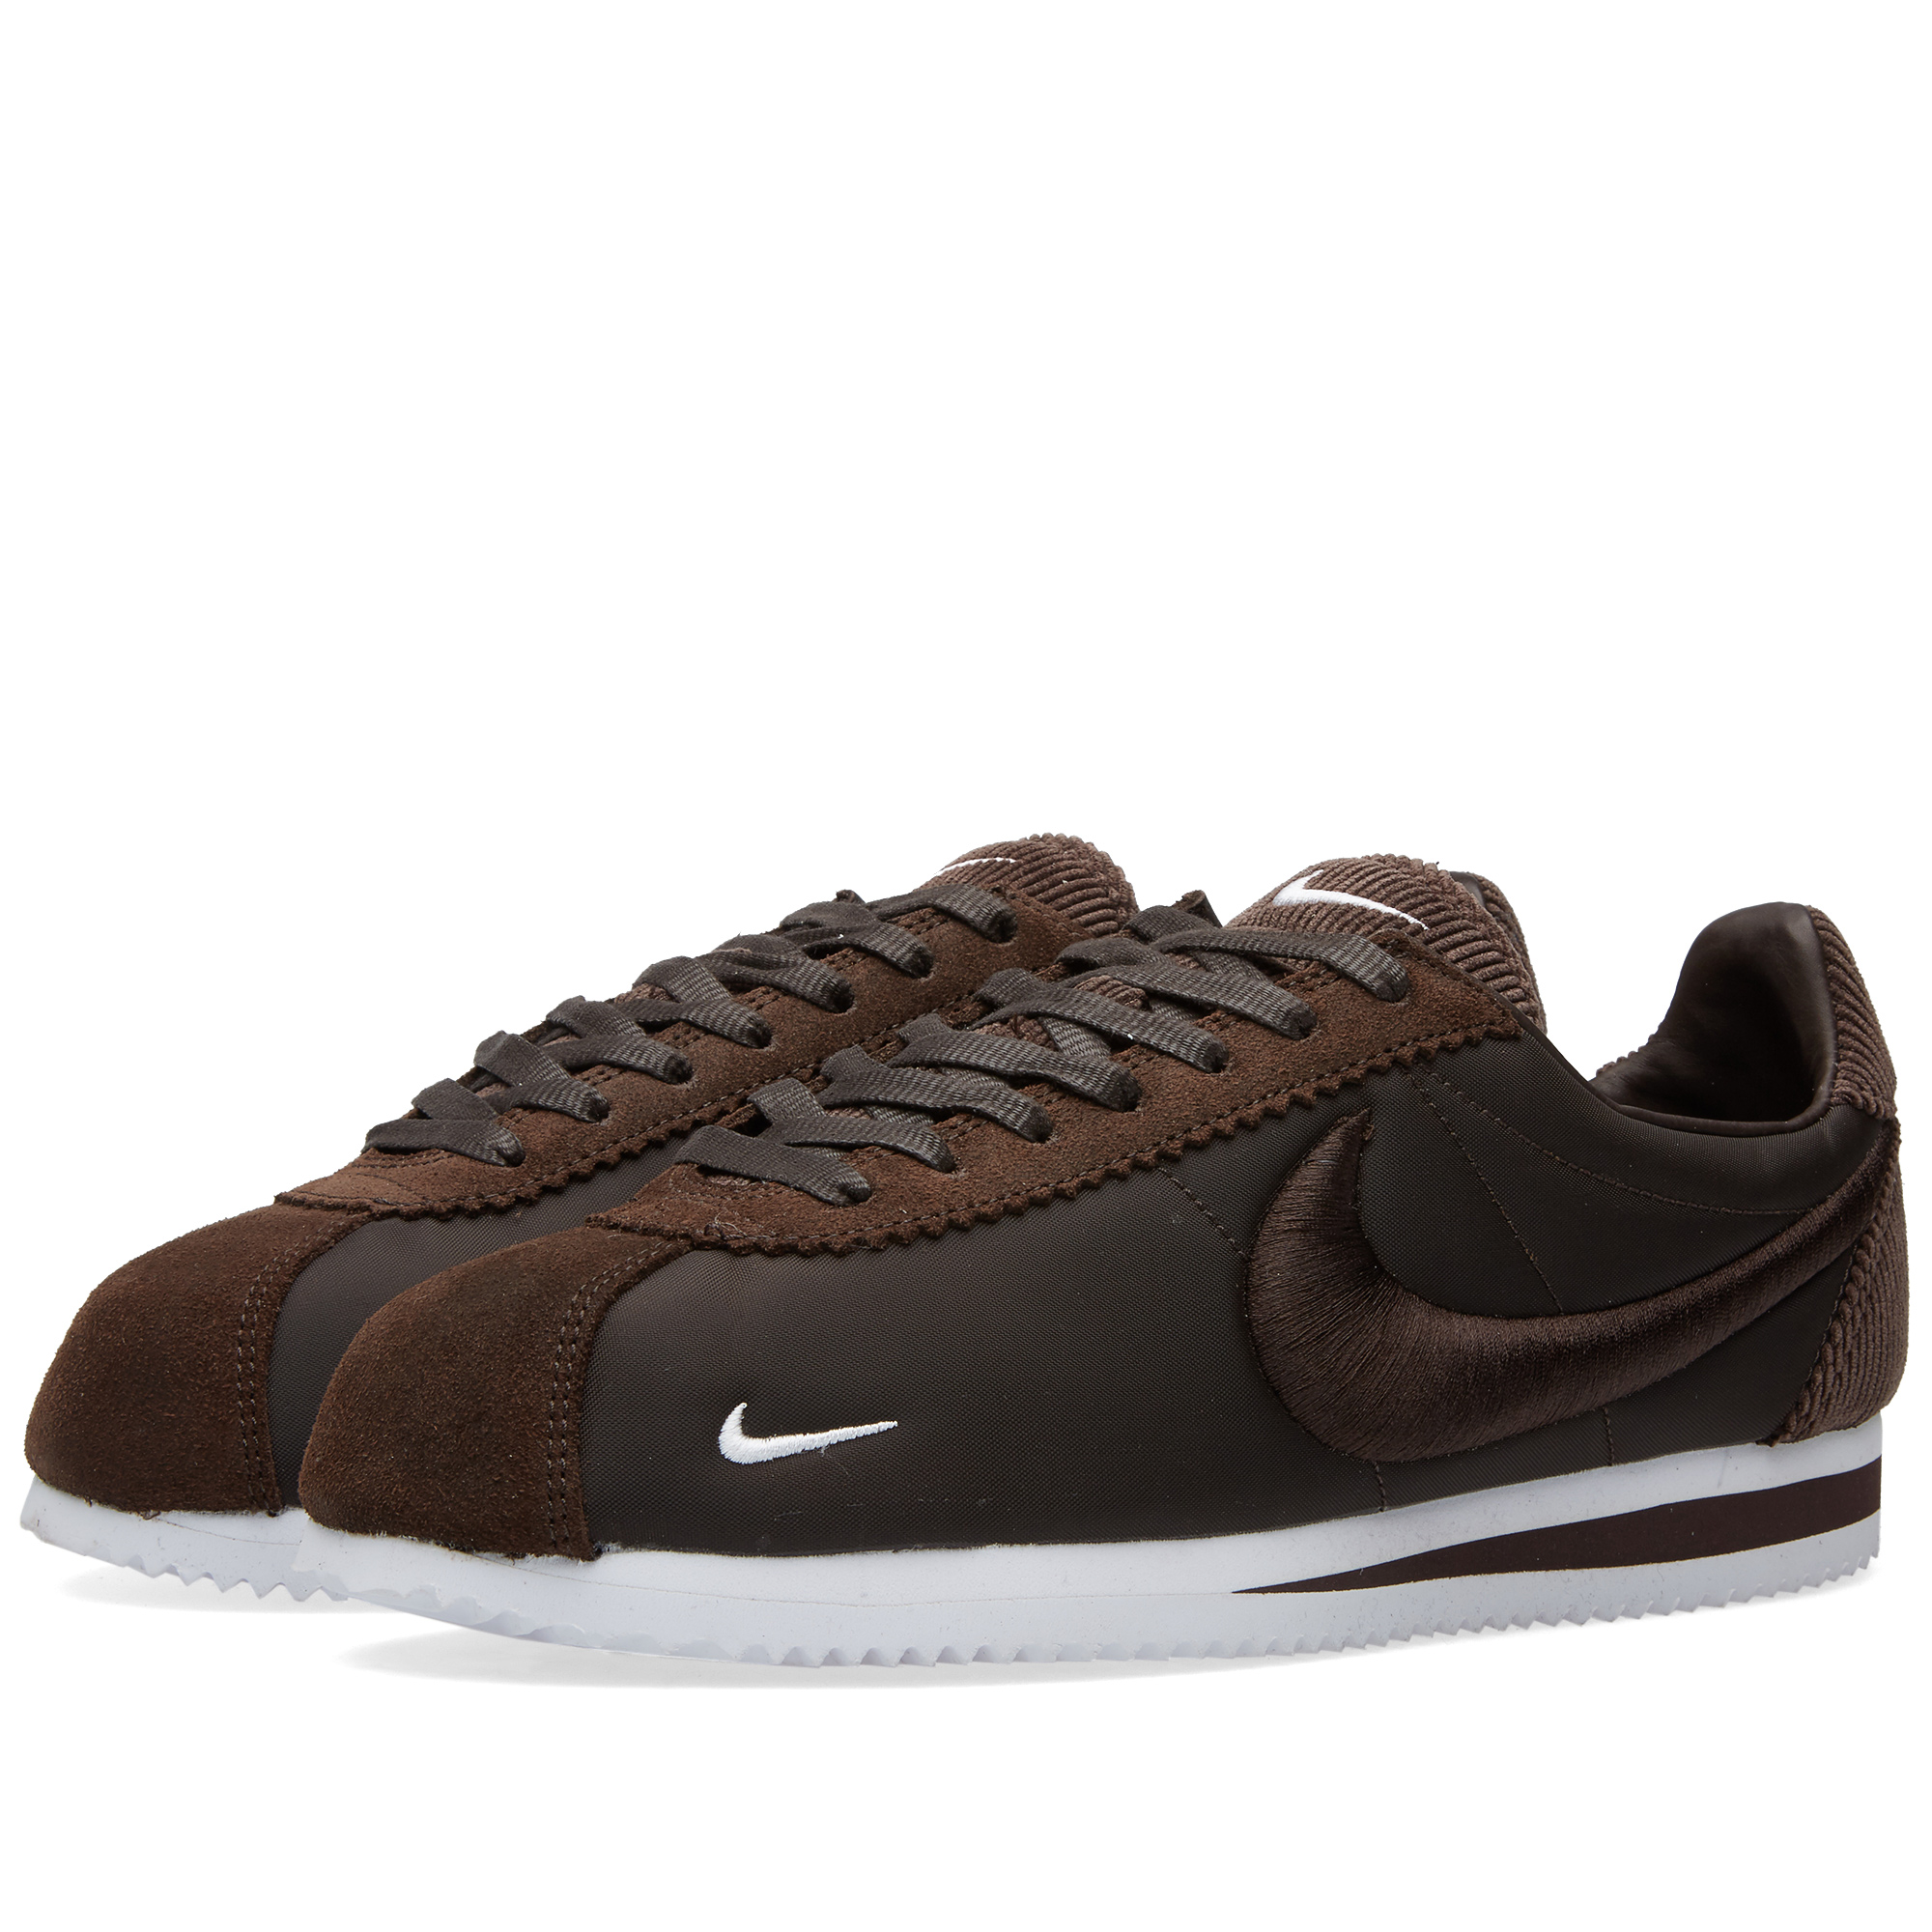 nike classic cortez sp classic brown white. Black Bedroom Furniture Sets. Home Design Ideas